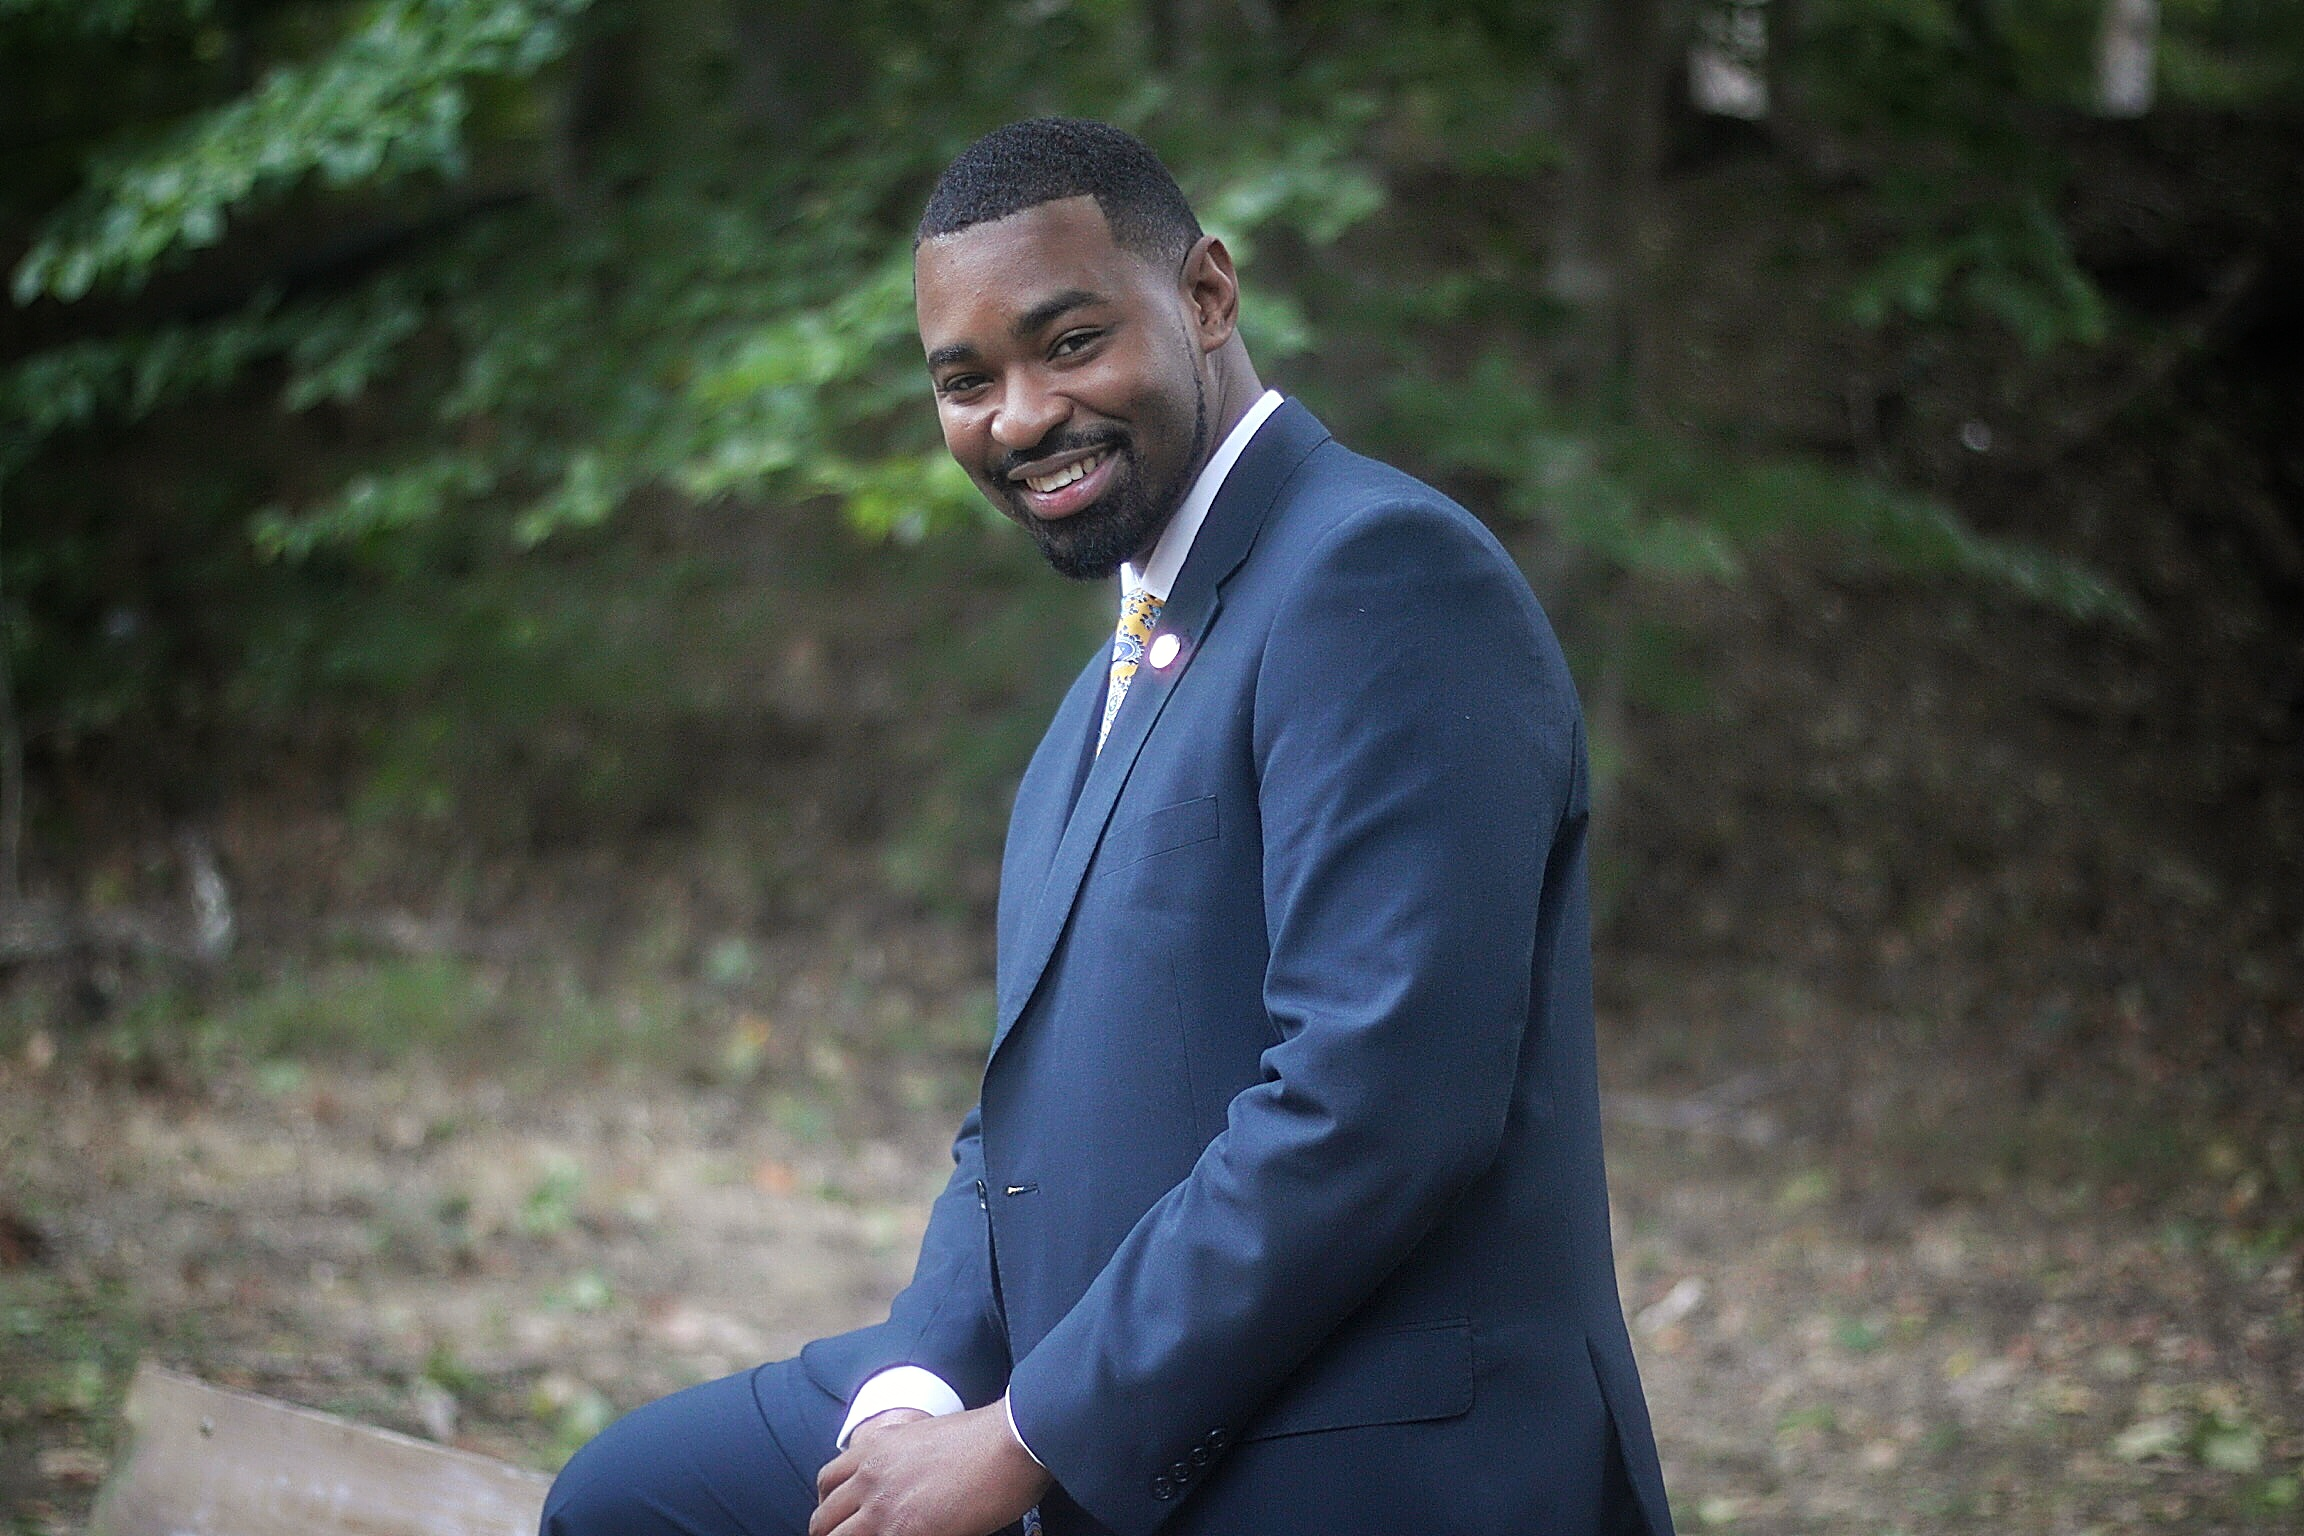 Joshua G. Cole - Candidate for Delegate District 28